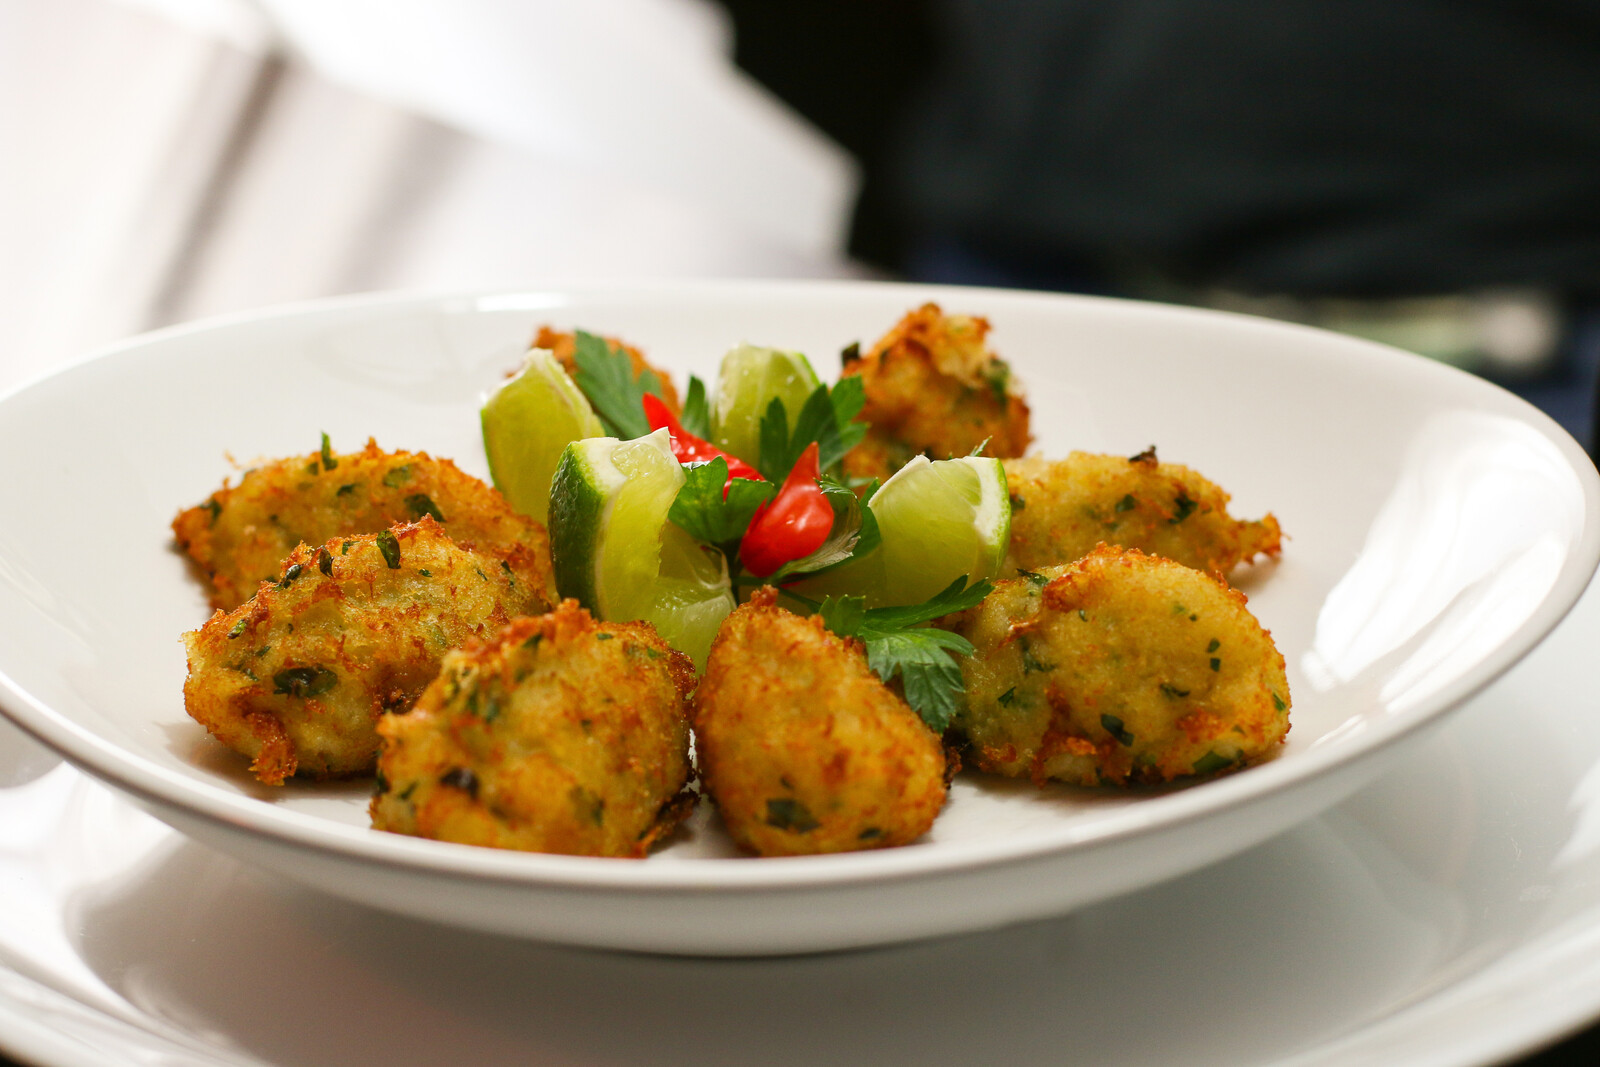 conch fritters on a white plate with limes and parsley garnishing the middle